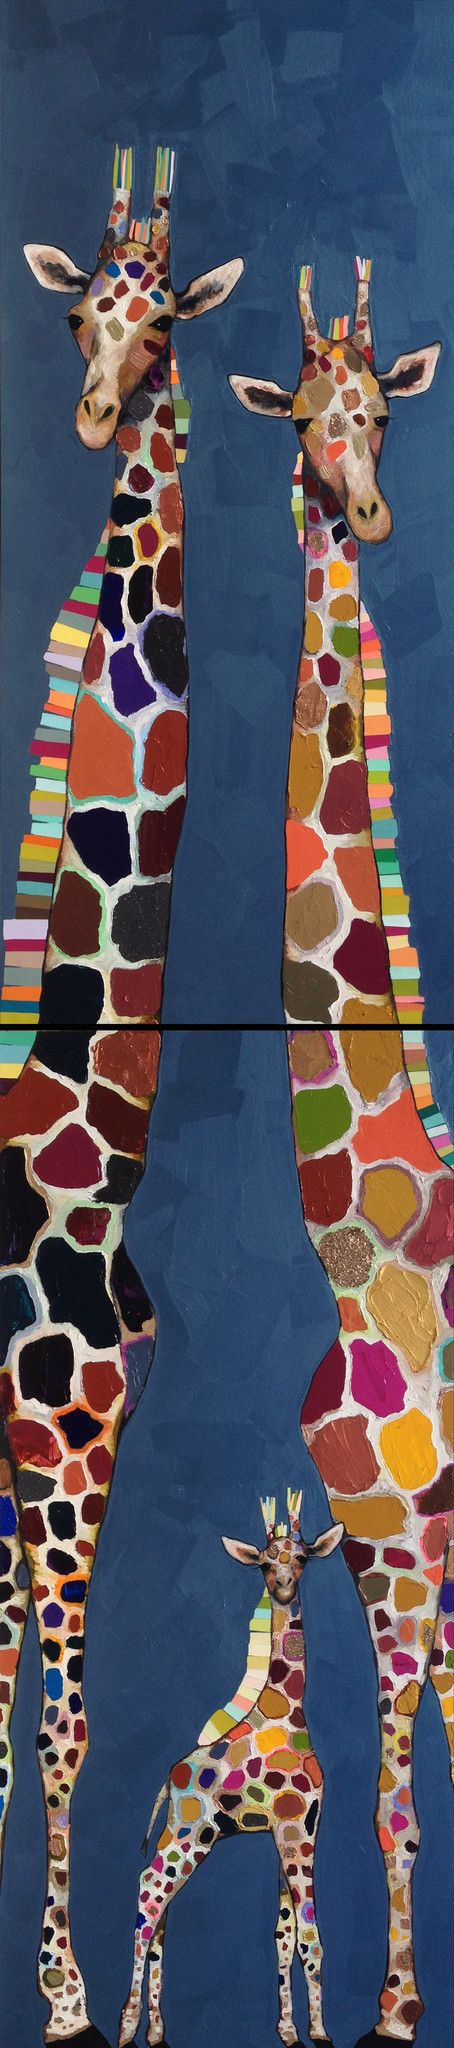 Super Tall Giraffe Family in Metallic Blue by Eli Halpin prints available at http://elihalpin.com/products/octopus-diptych-canvas-reproduction